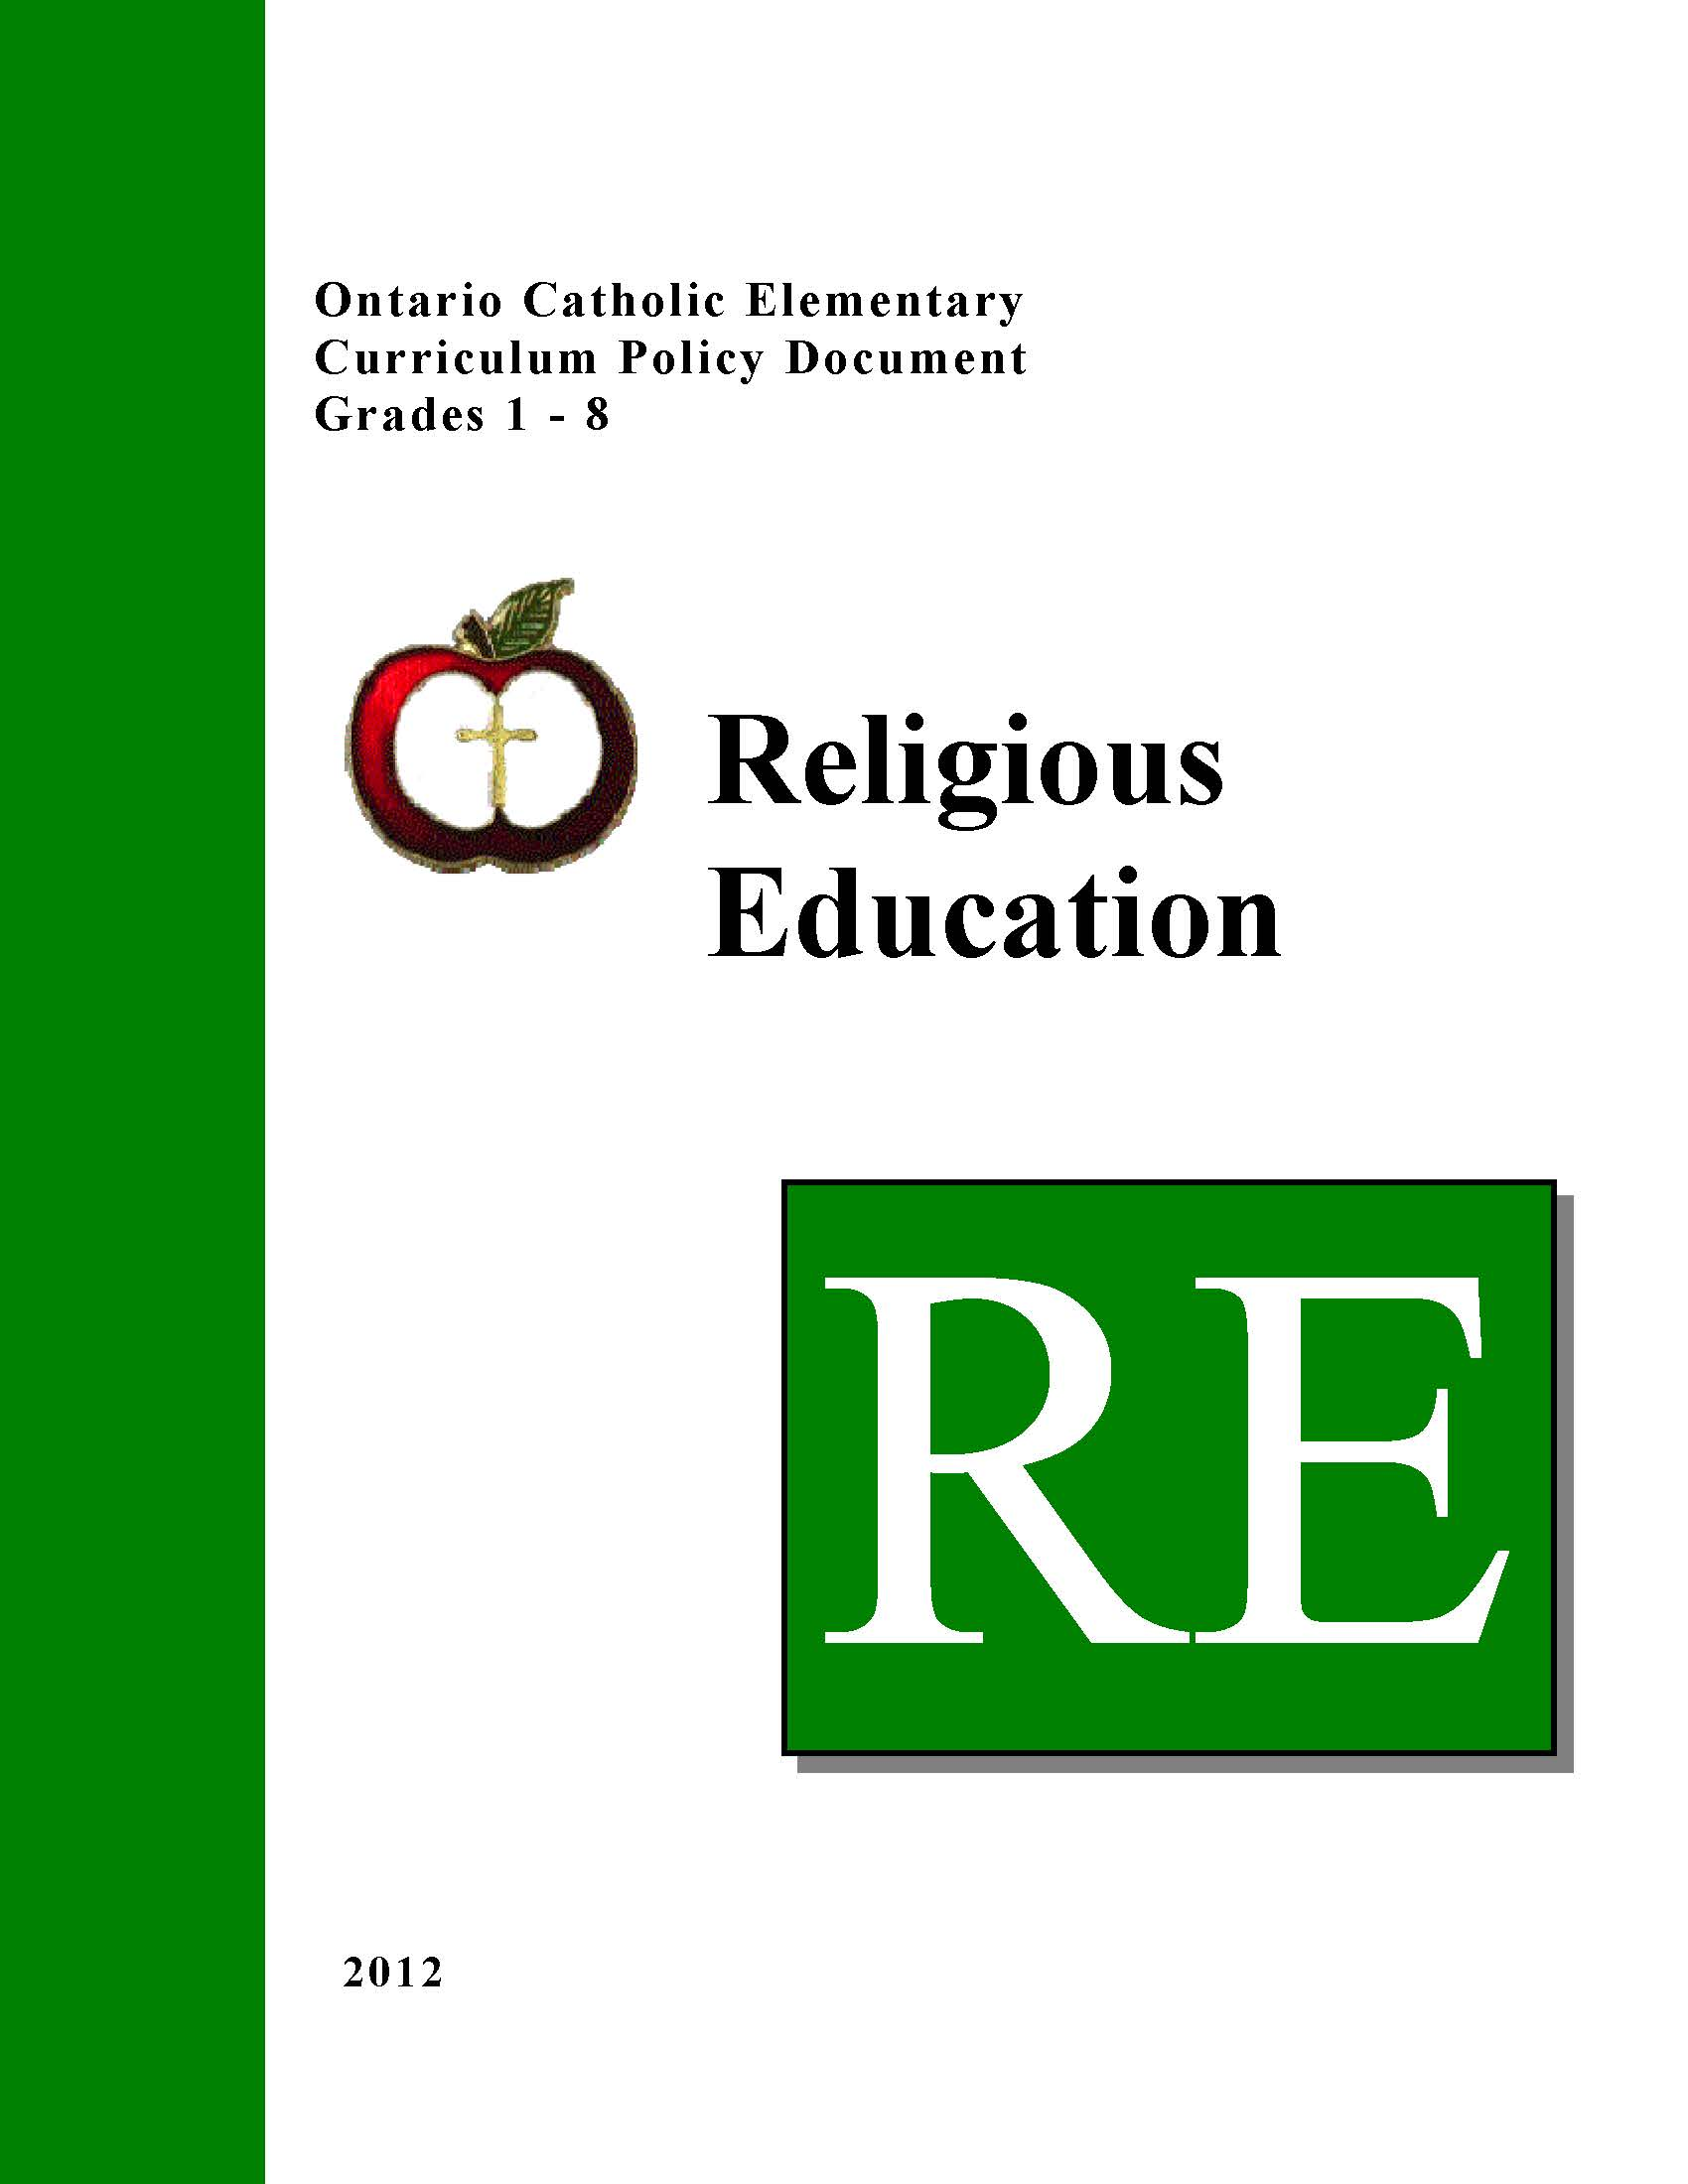 Elementary Religious Ed Policy Link